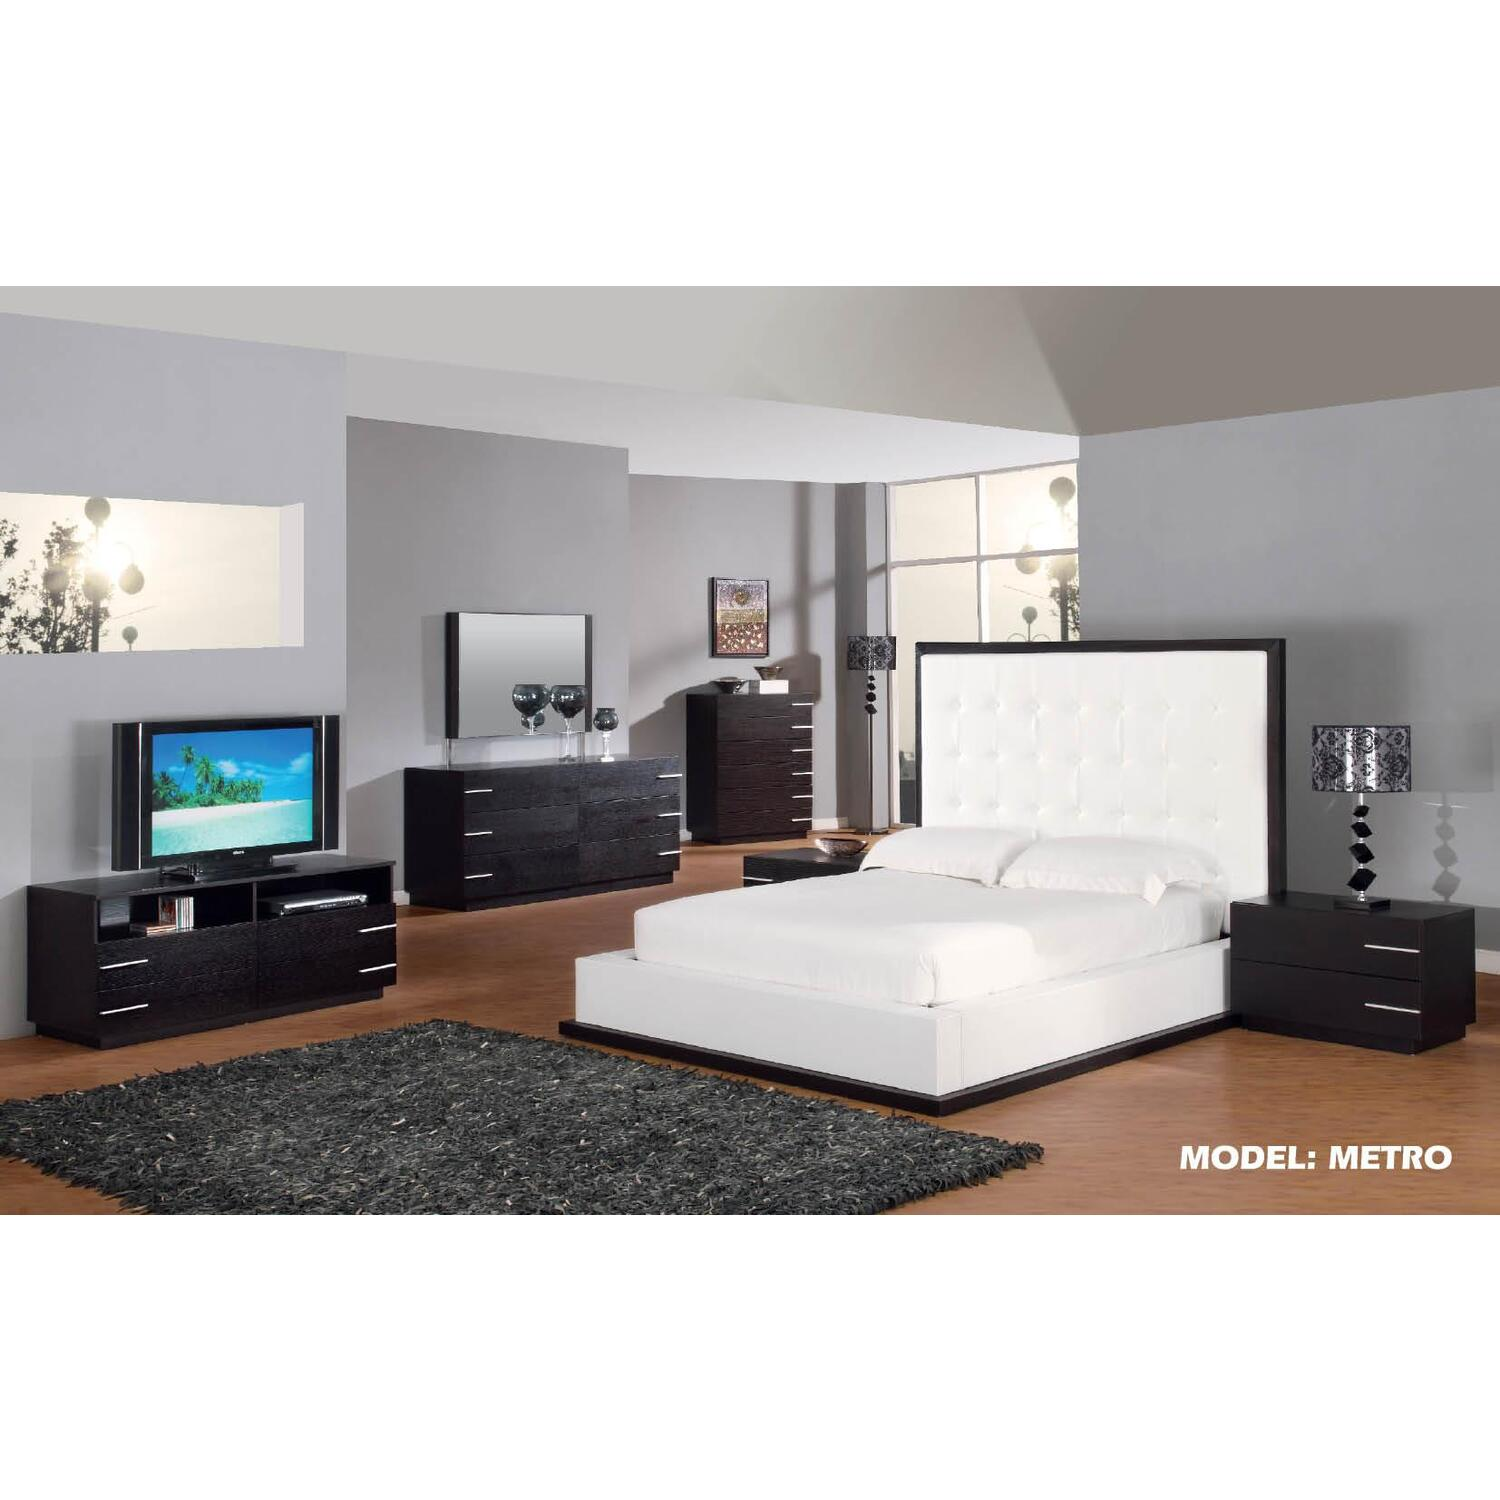 Brilliant Wood Bedroom Furniture Sets 1654 x 1024 · 133 kB · jpeg